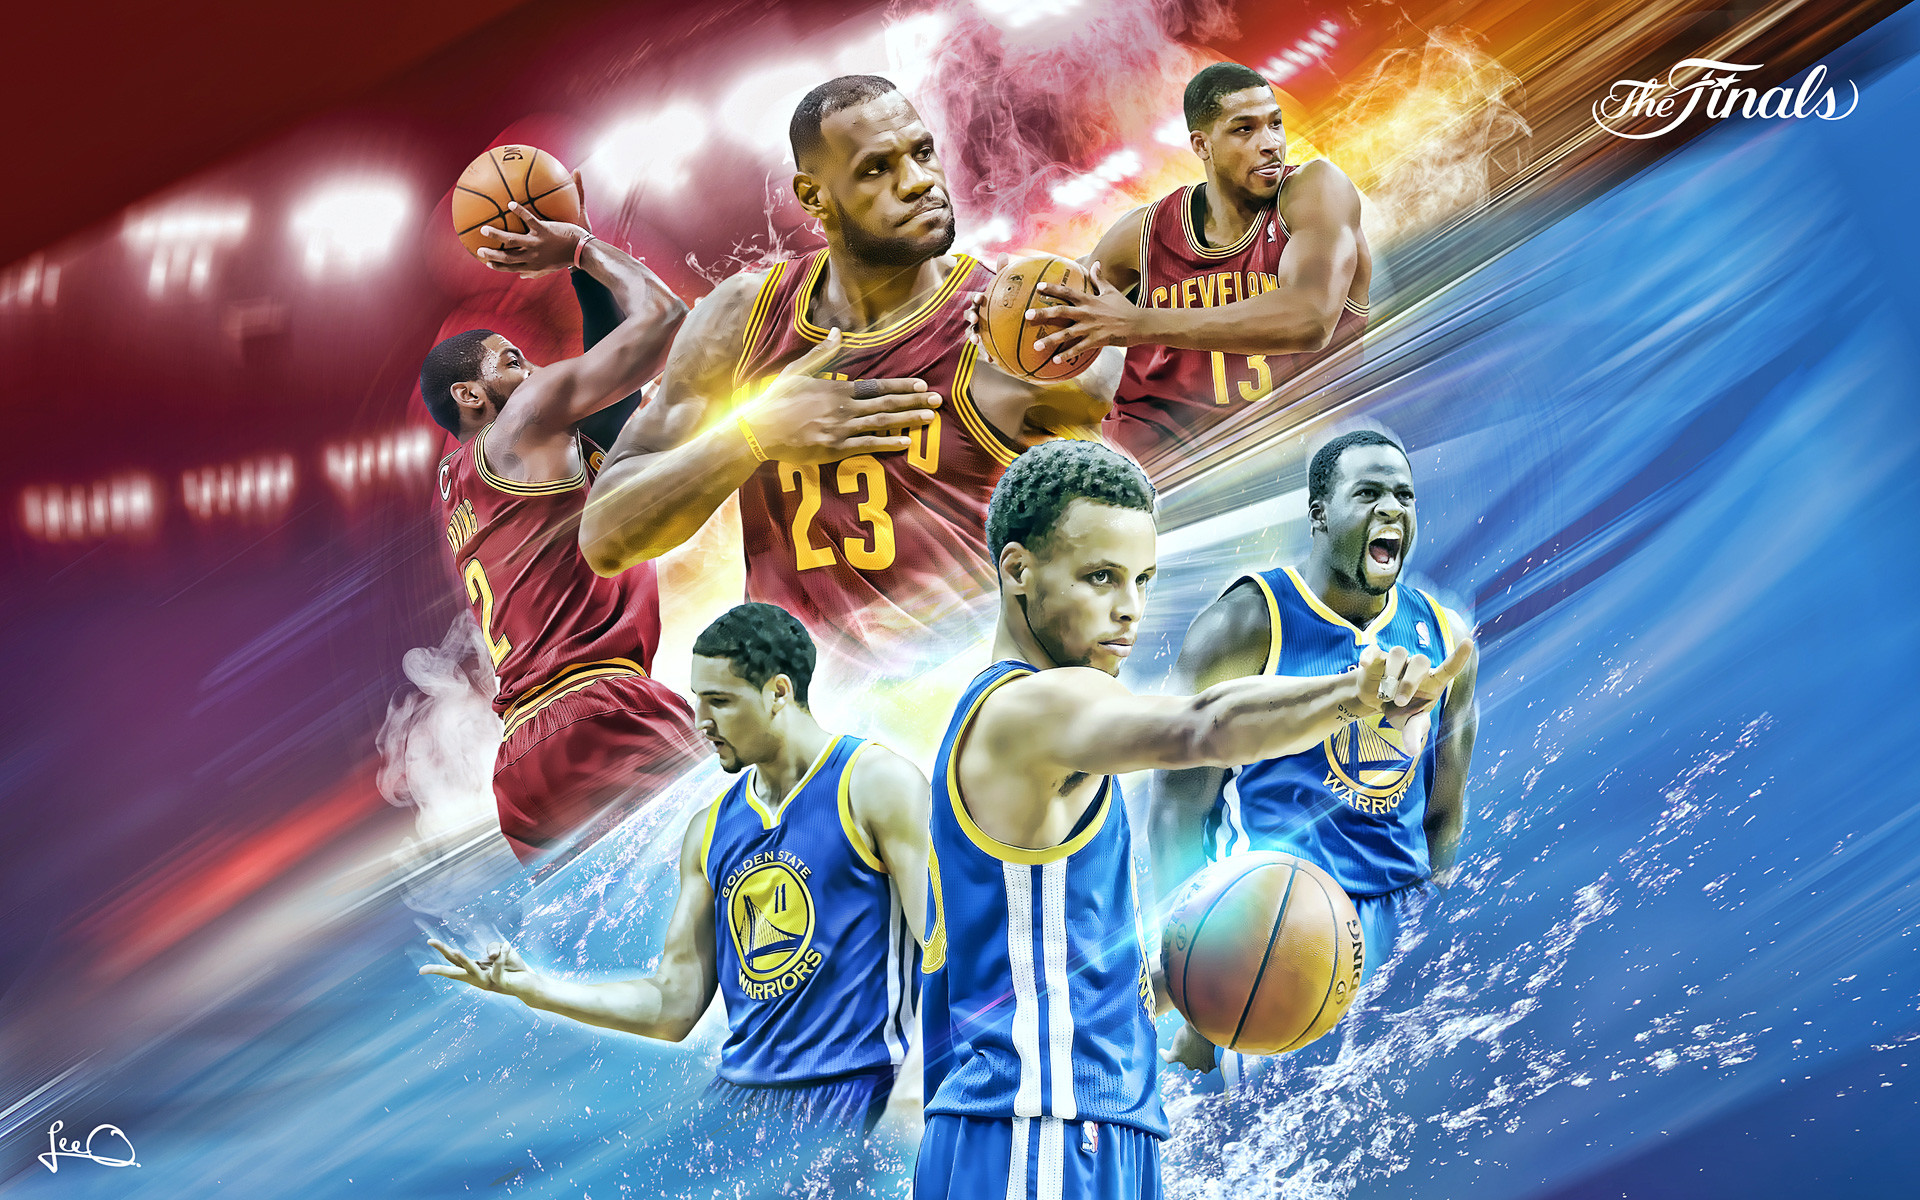 2160x1440 Golden State Warriors Wallpapers Nba Basketball Players San Francisco Oracle Arena